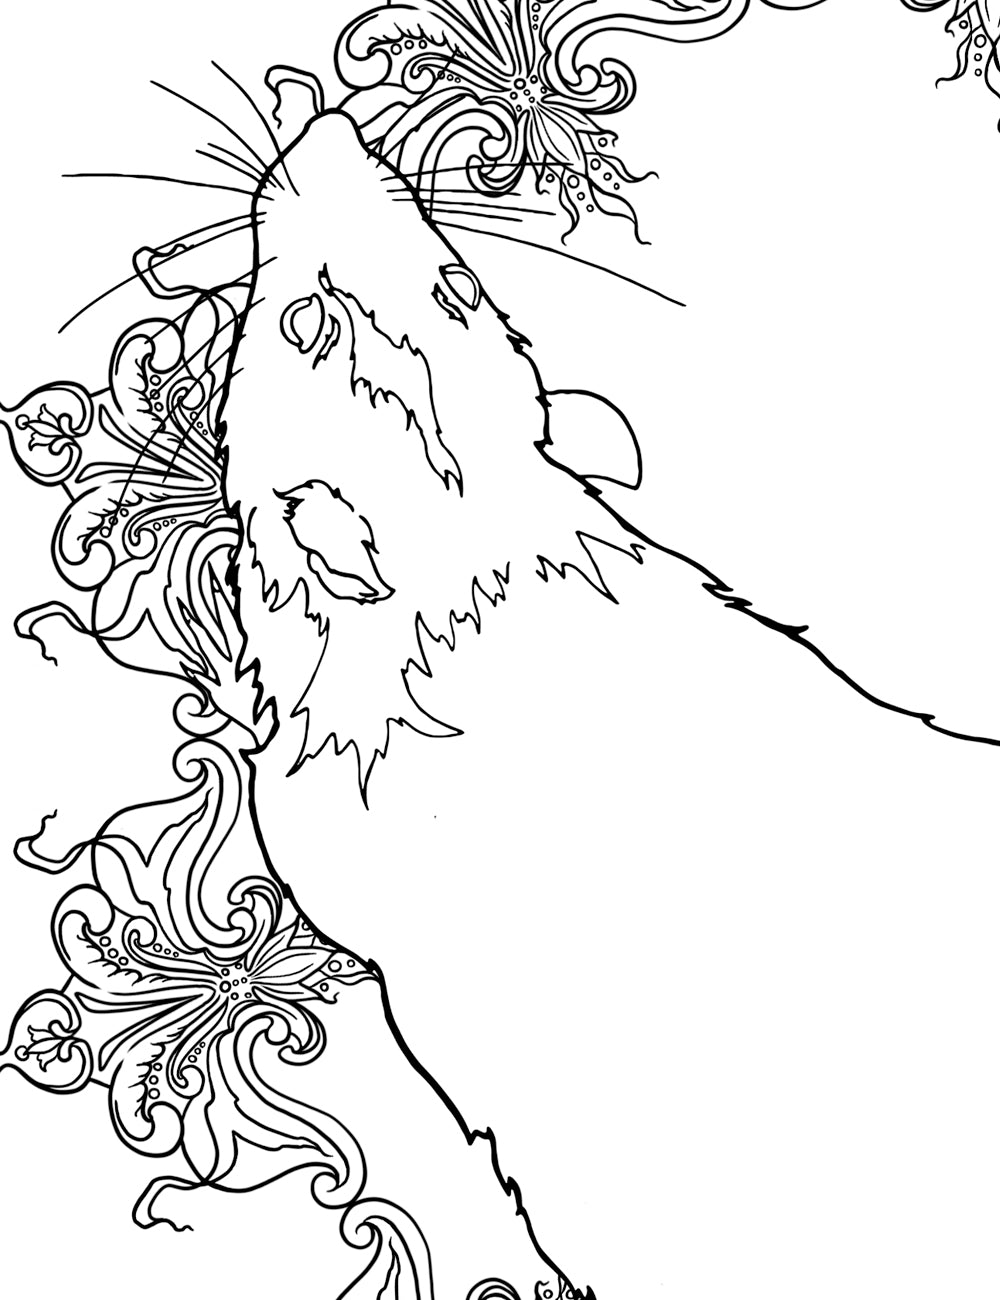 Asylum Coloring Book Page: Sir Edward